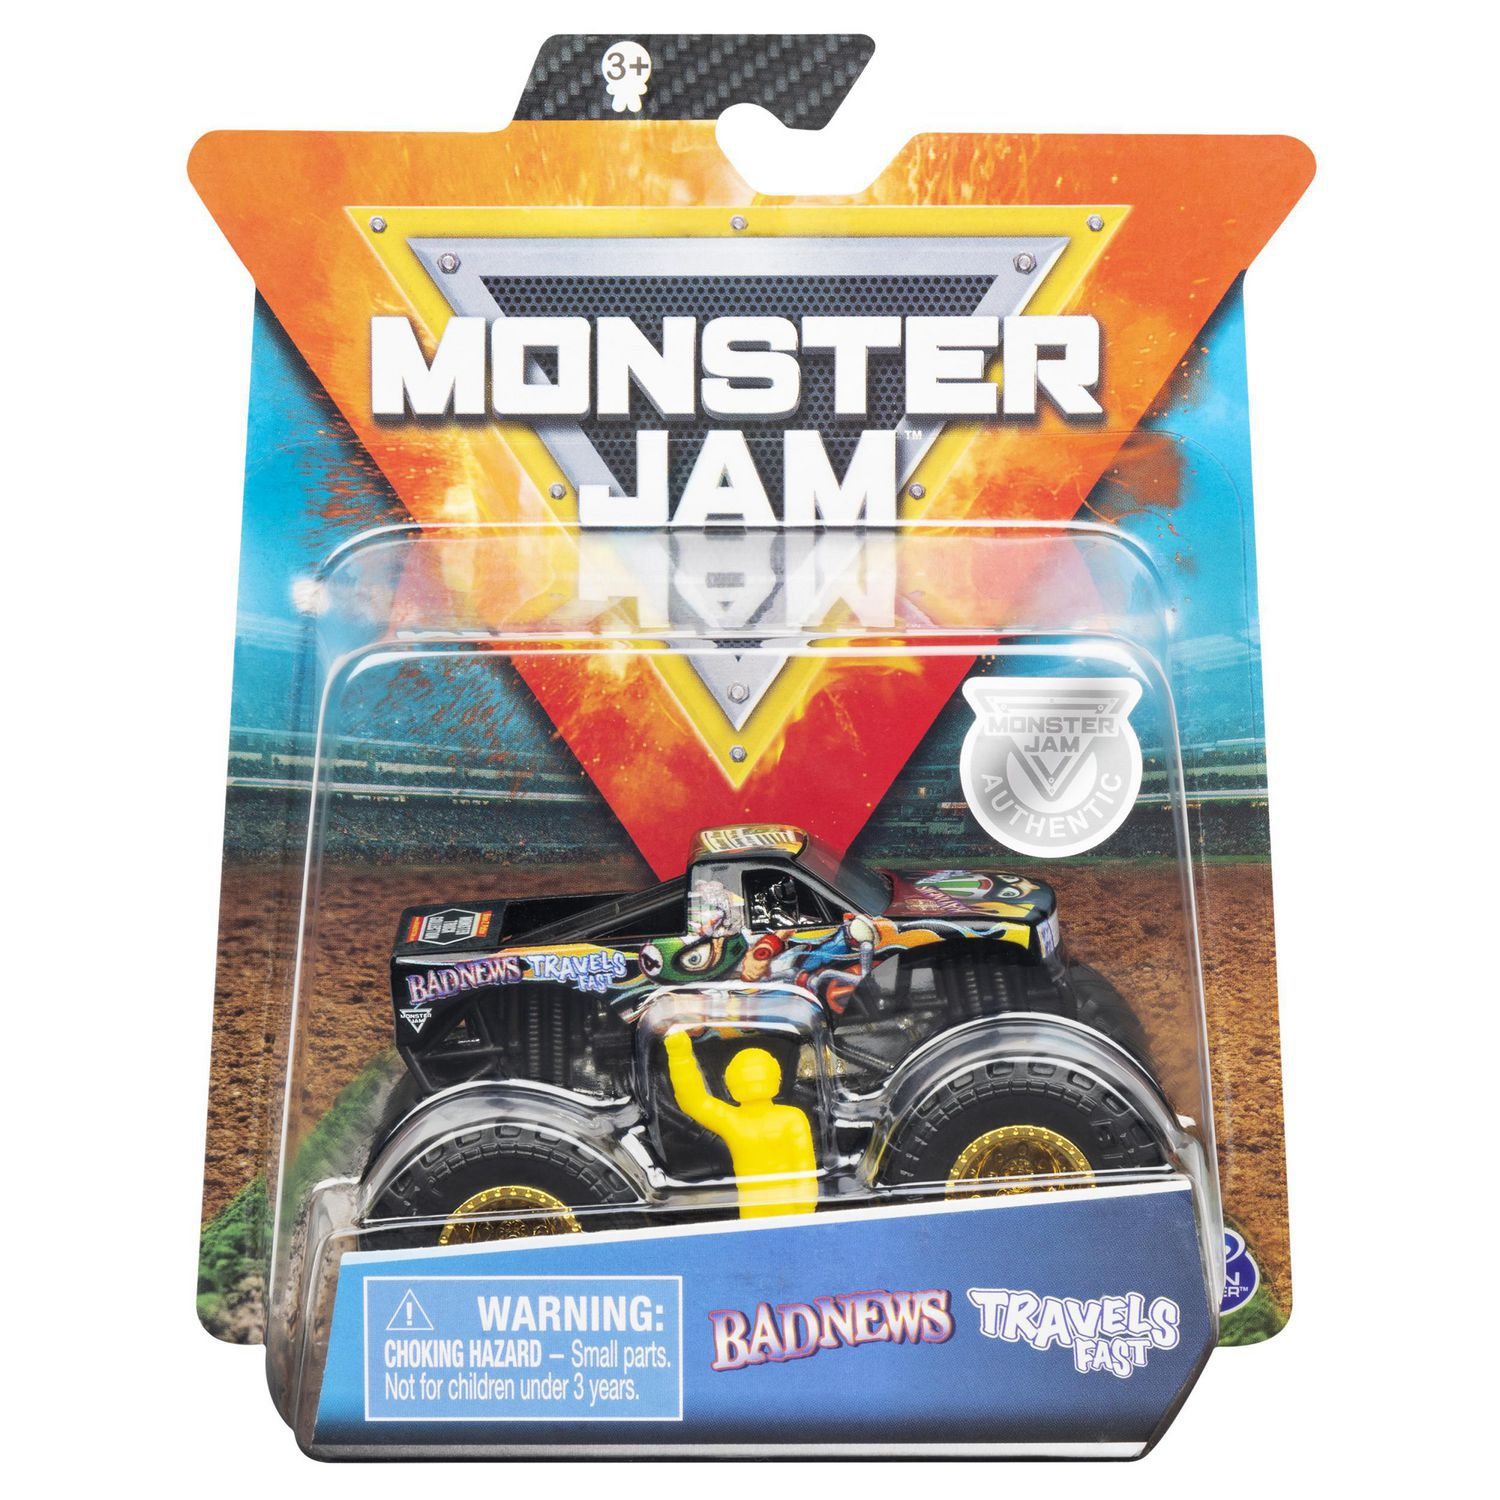 Monster Jam Truck - Bad News Travel Fast - 1:64 - Original